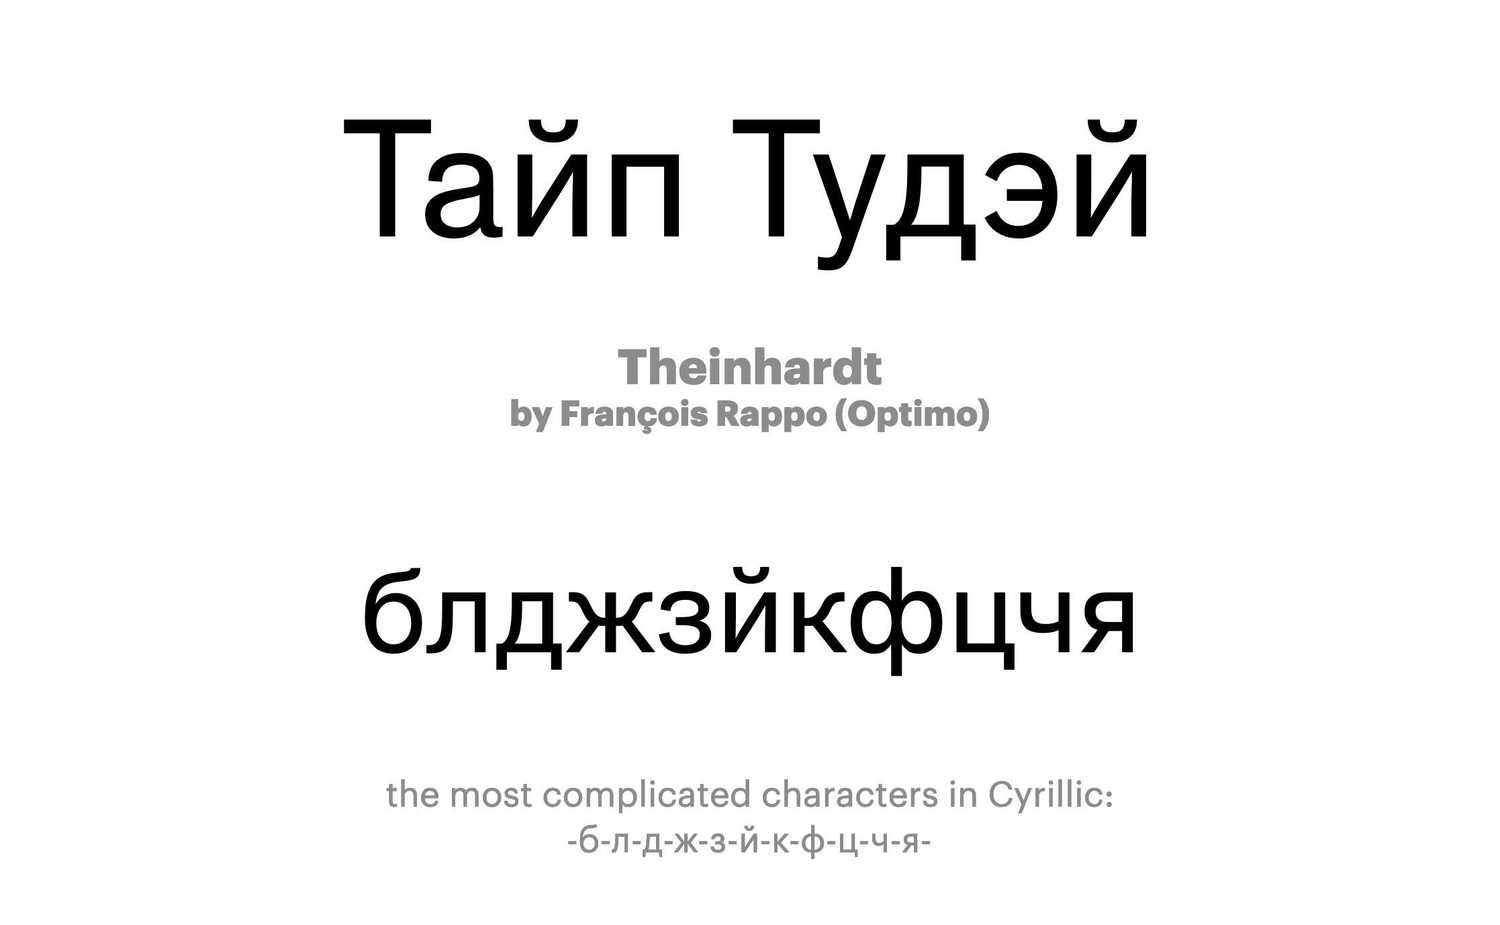 Theinhardt-by-Francois-Rappo-(Optimo)